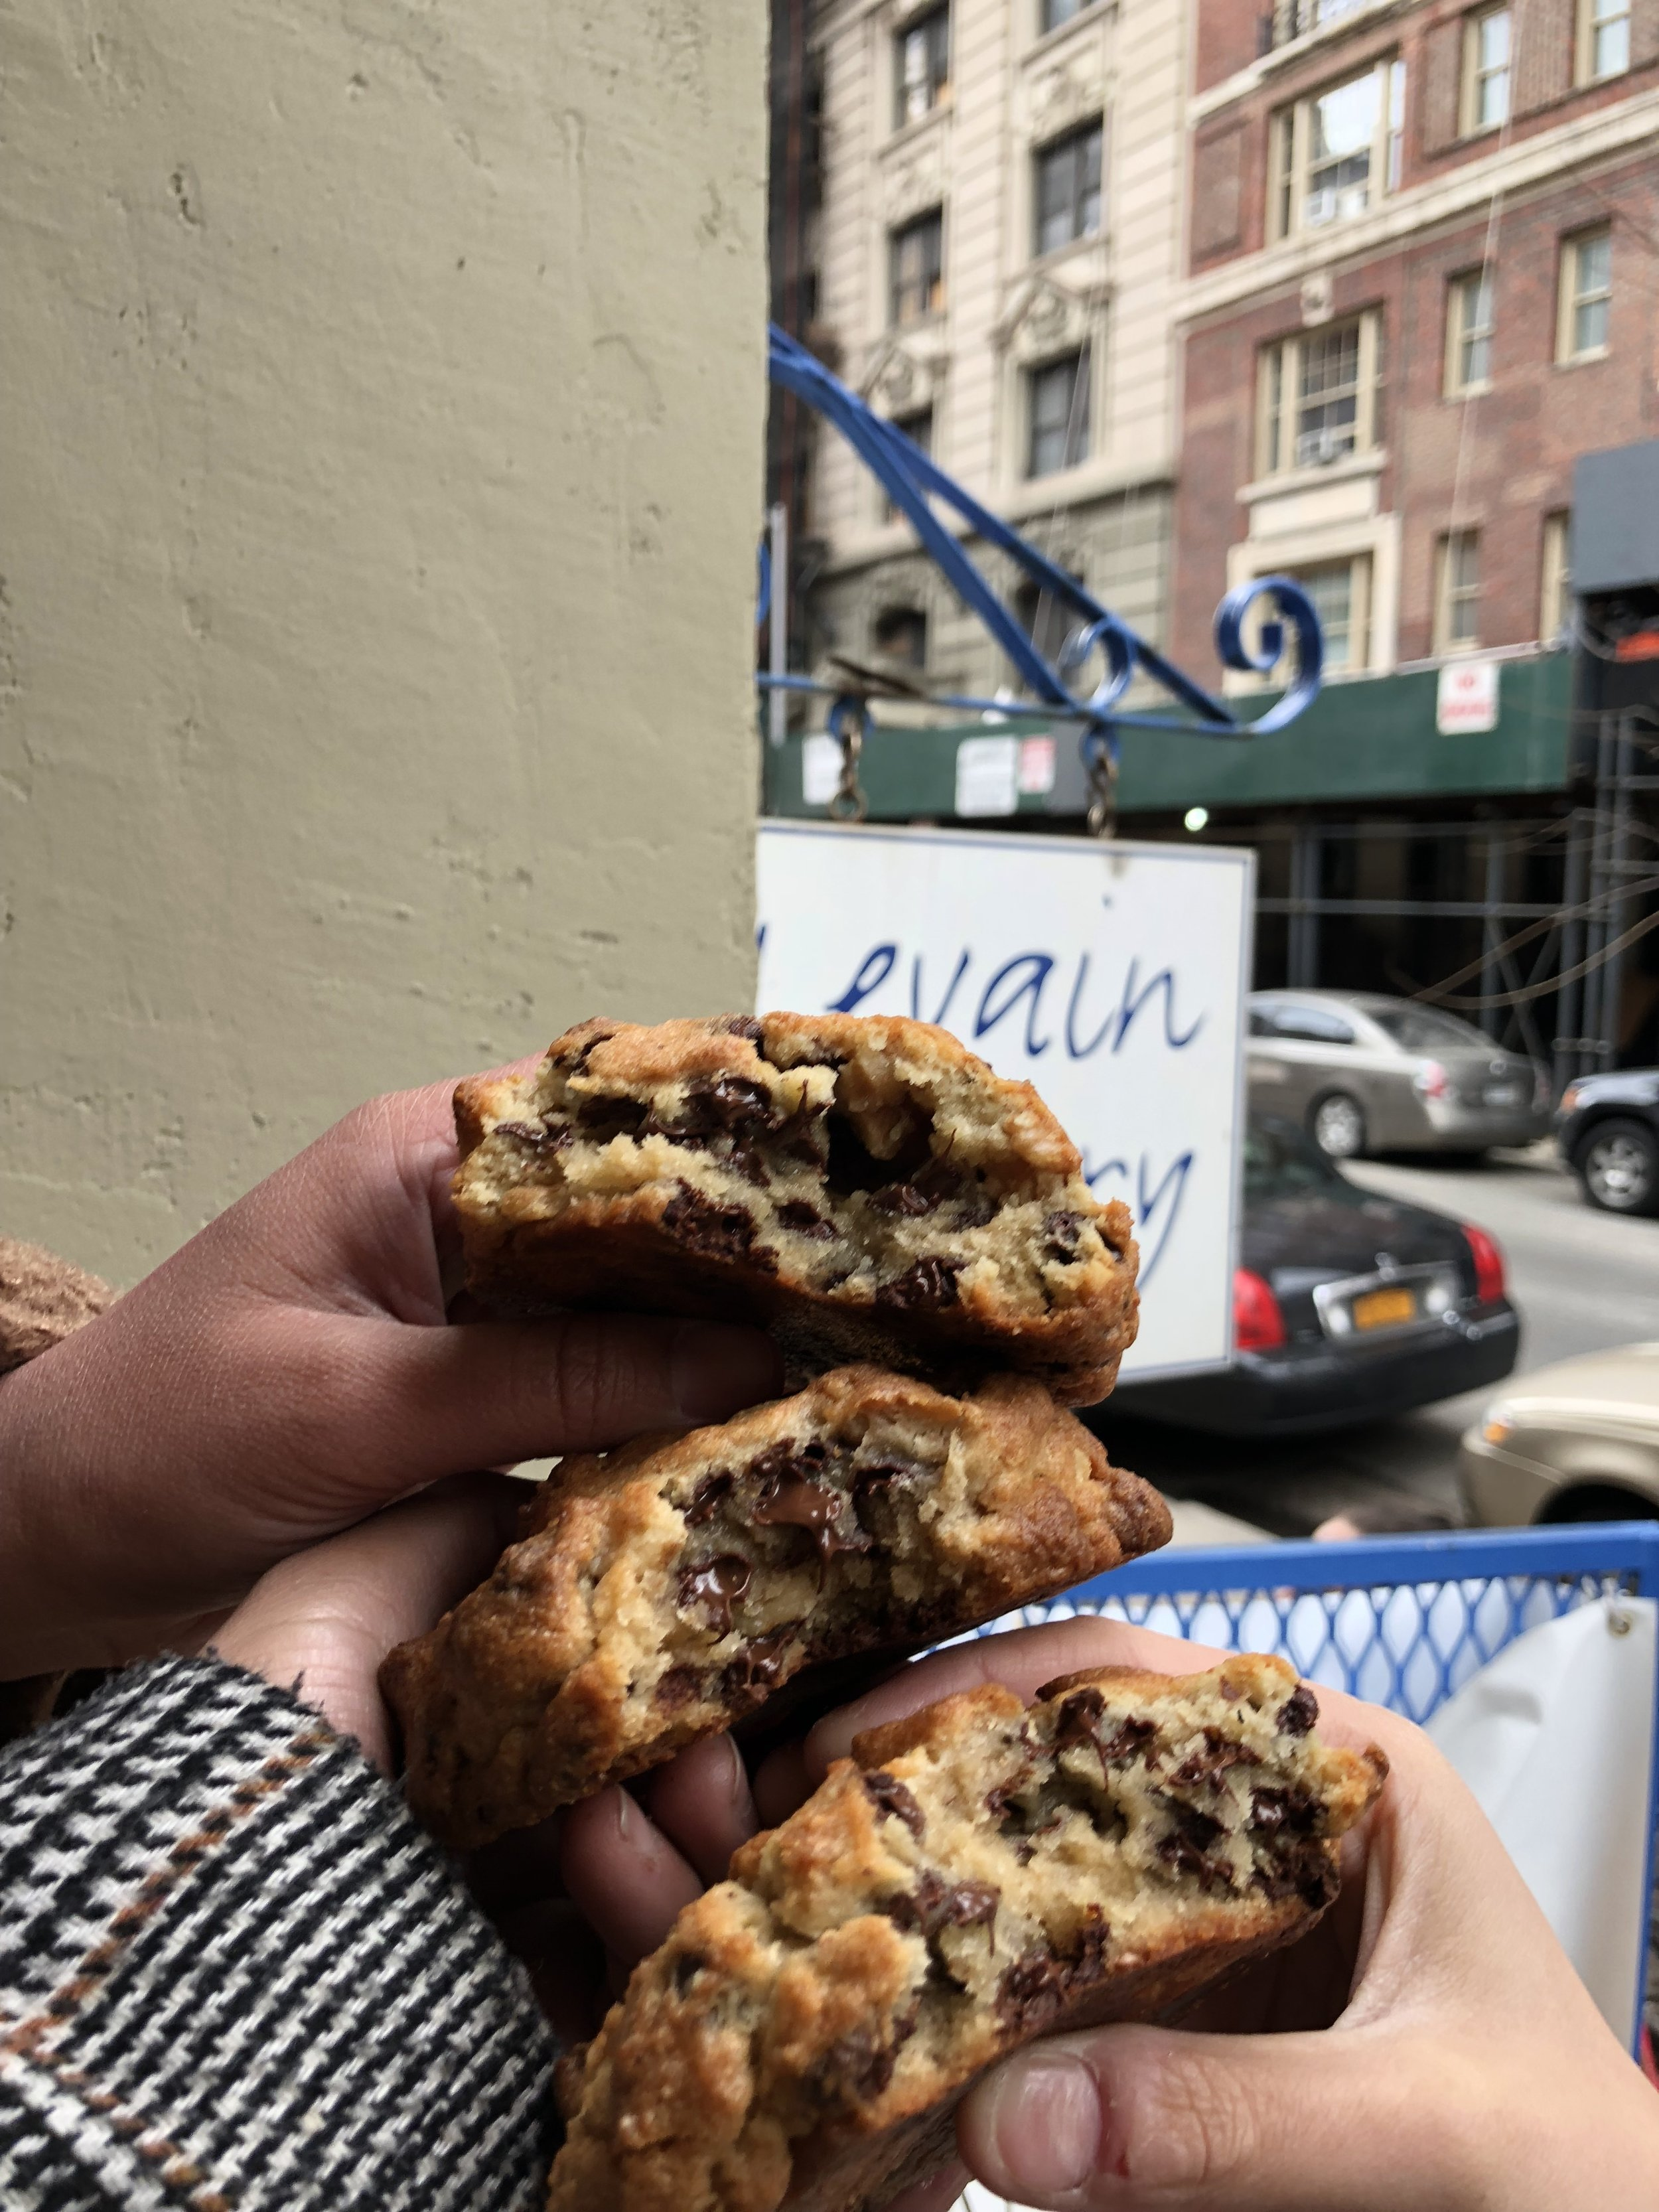 """LEVAIN BAKERY - If you love cookies and you don't mind waiting in line for an hour or two for some ooey gooey cookies, and """"the best cookies in NY"""" this is your place.P.S Wrap up warm, wear some comfy footwear and grab your favourite partners in crime to make the time go faster!"""